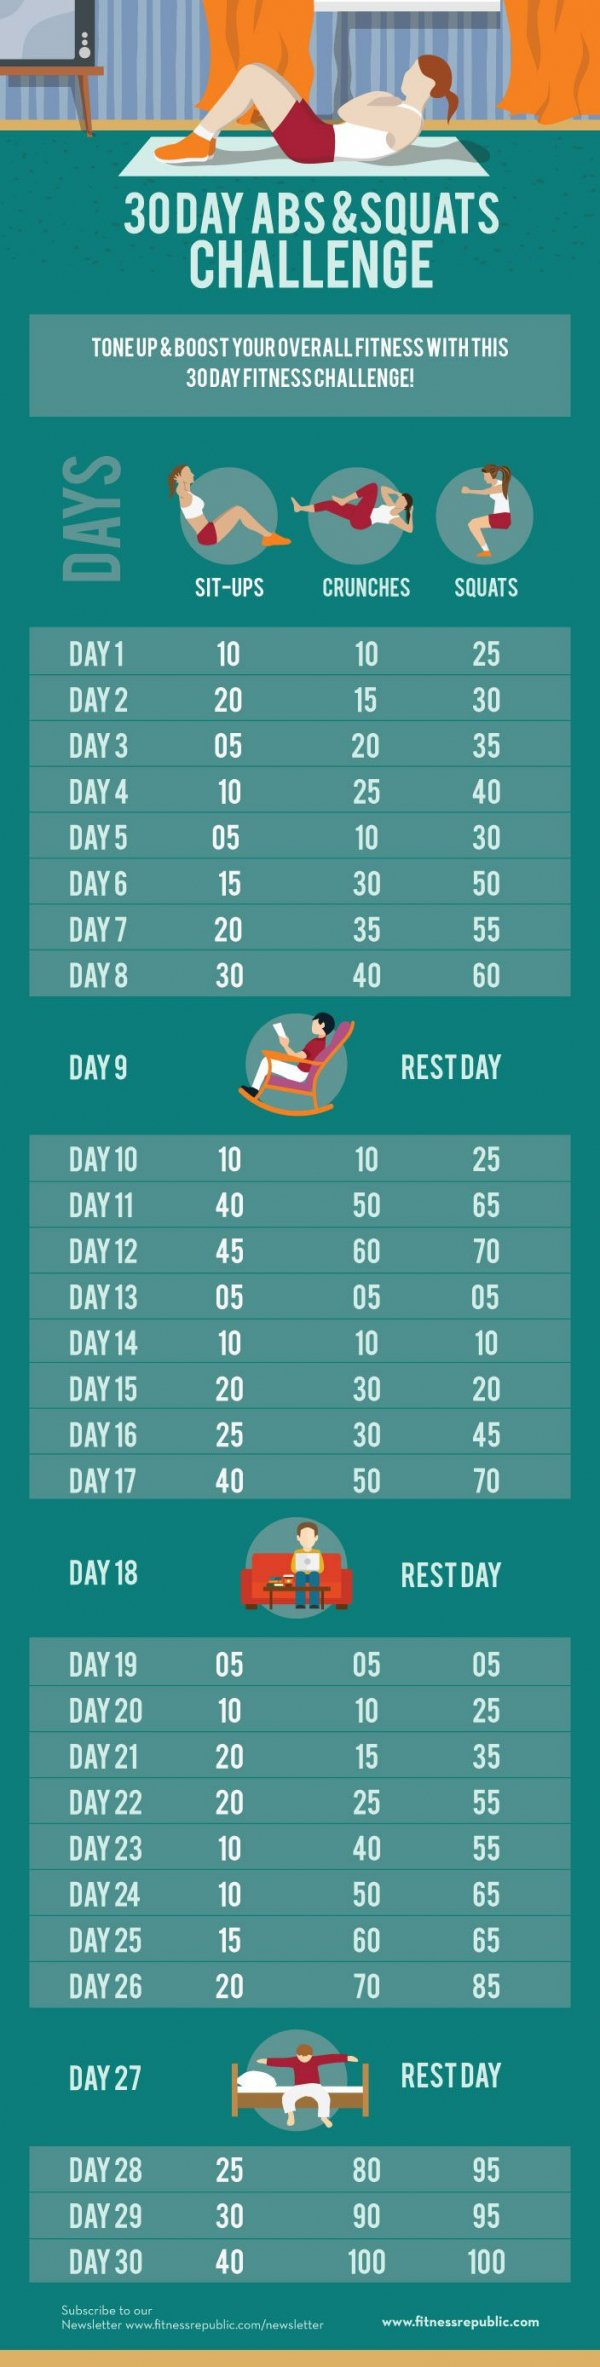 30-Day Abs & Squats